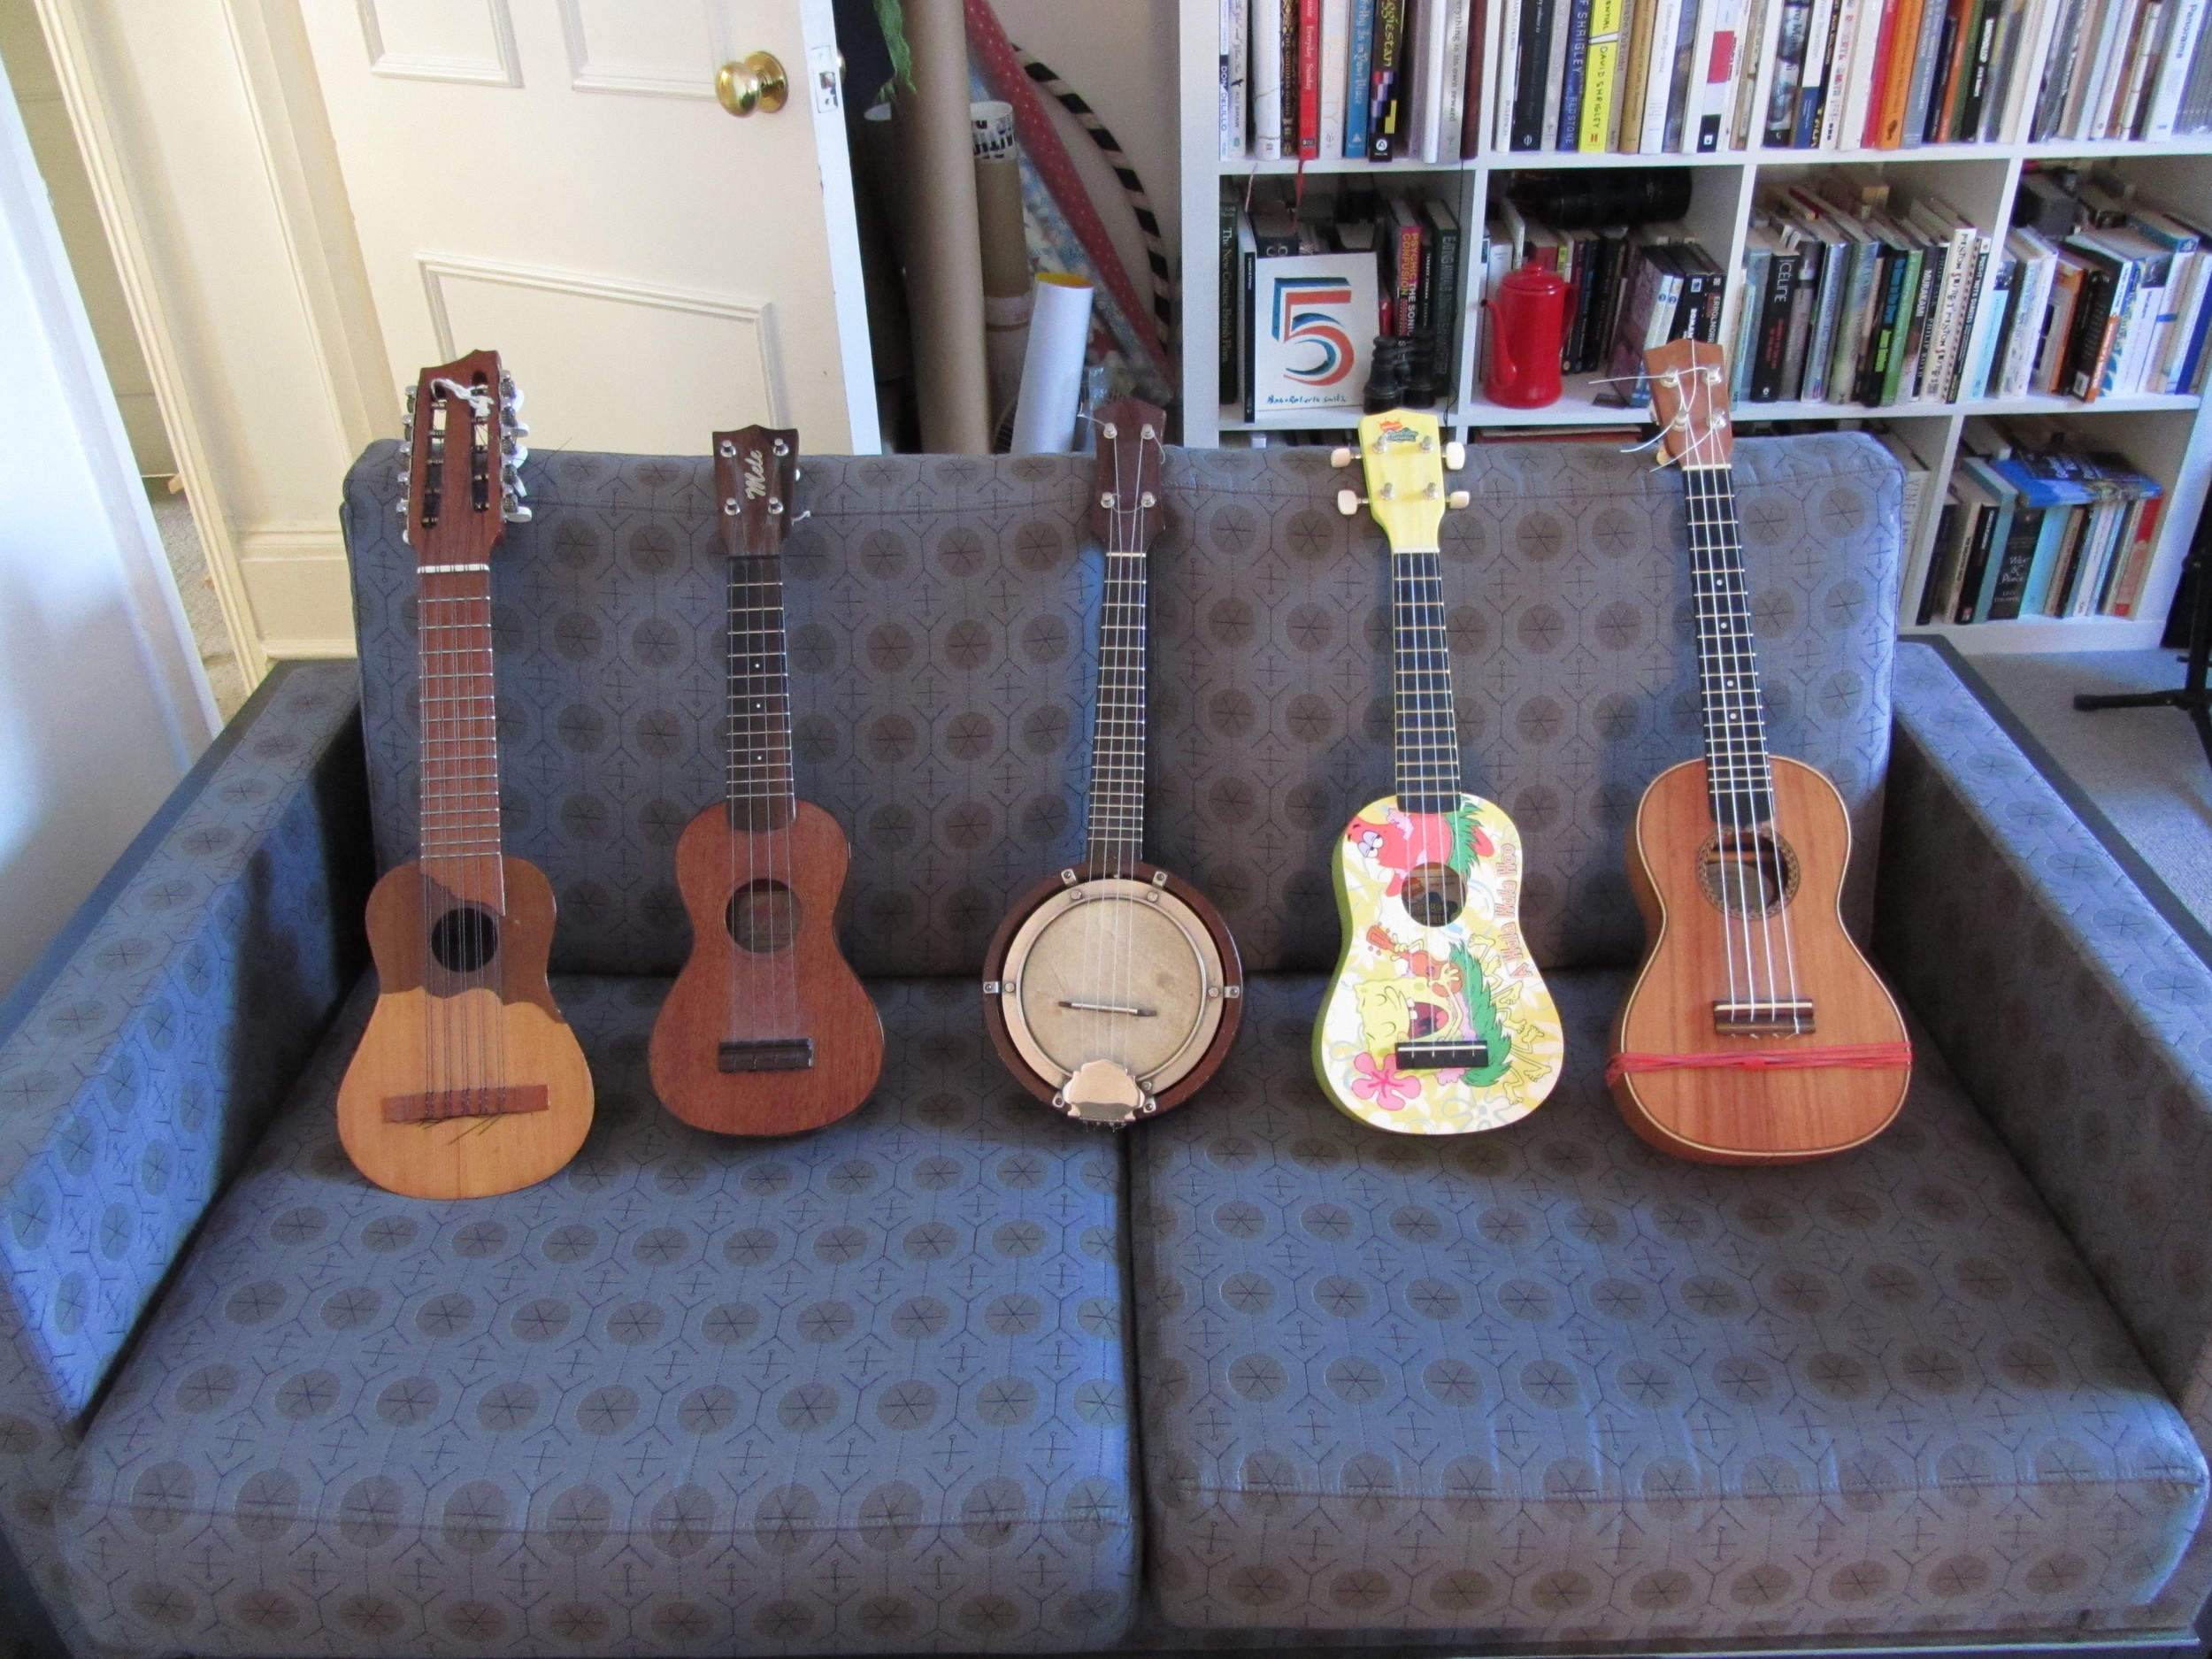 All the little ukuleles lined up.